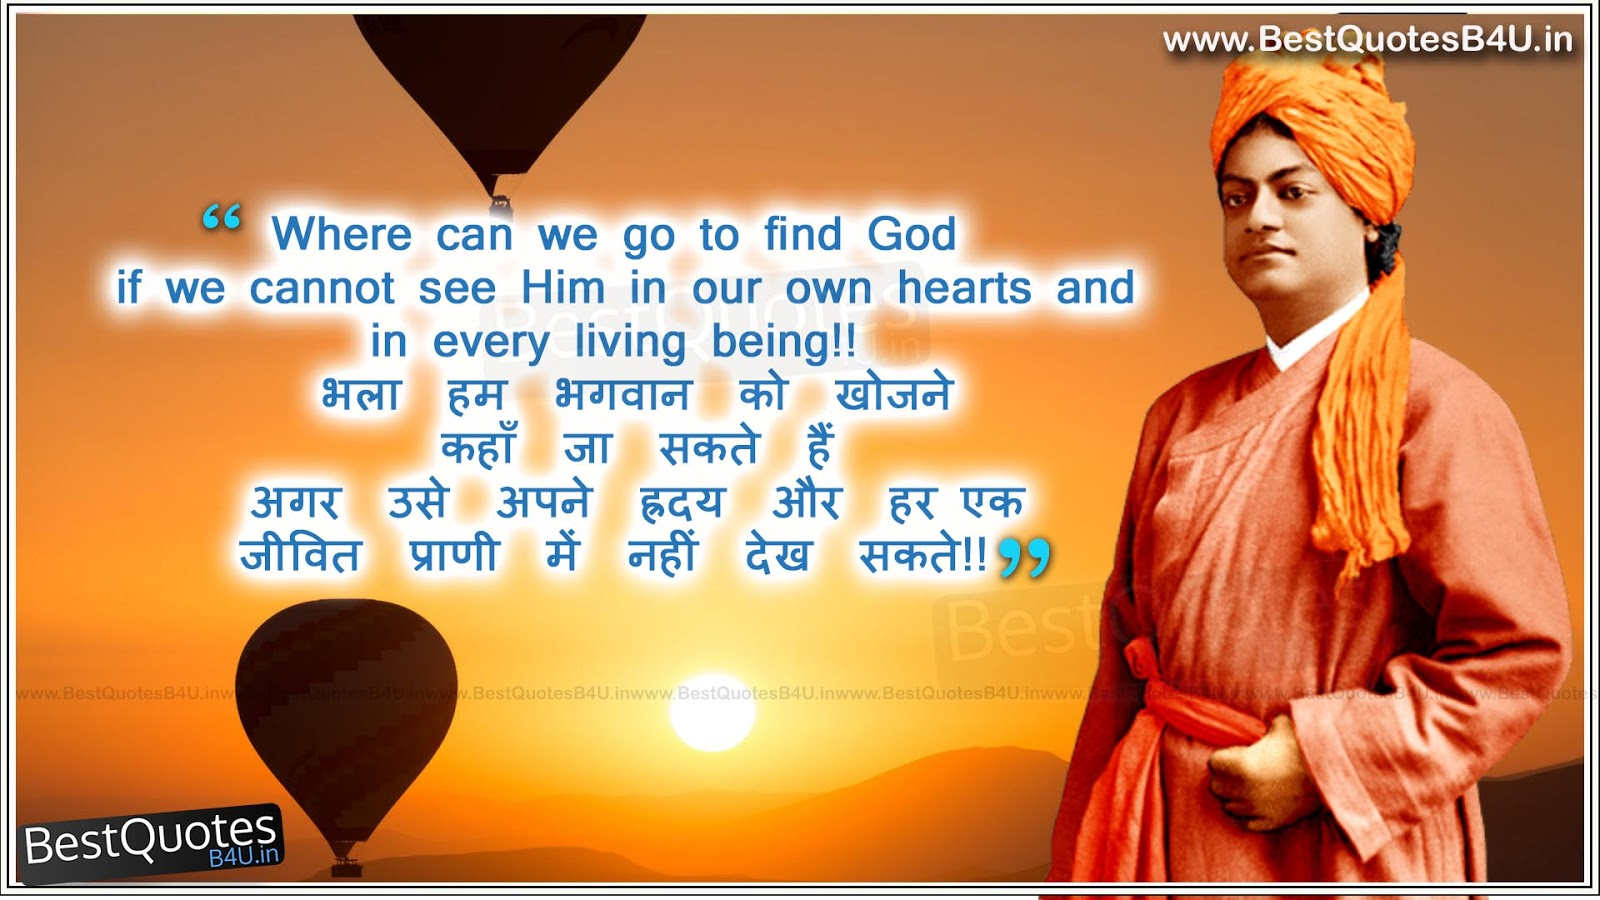 swami vivekananda quotes in english and hindi bestquotesbu swami vivekananda quotes in english and hindi